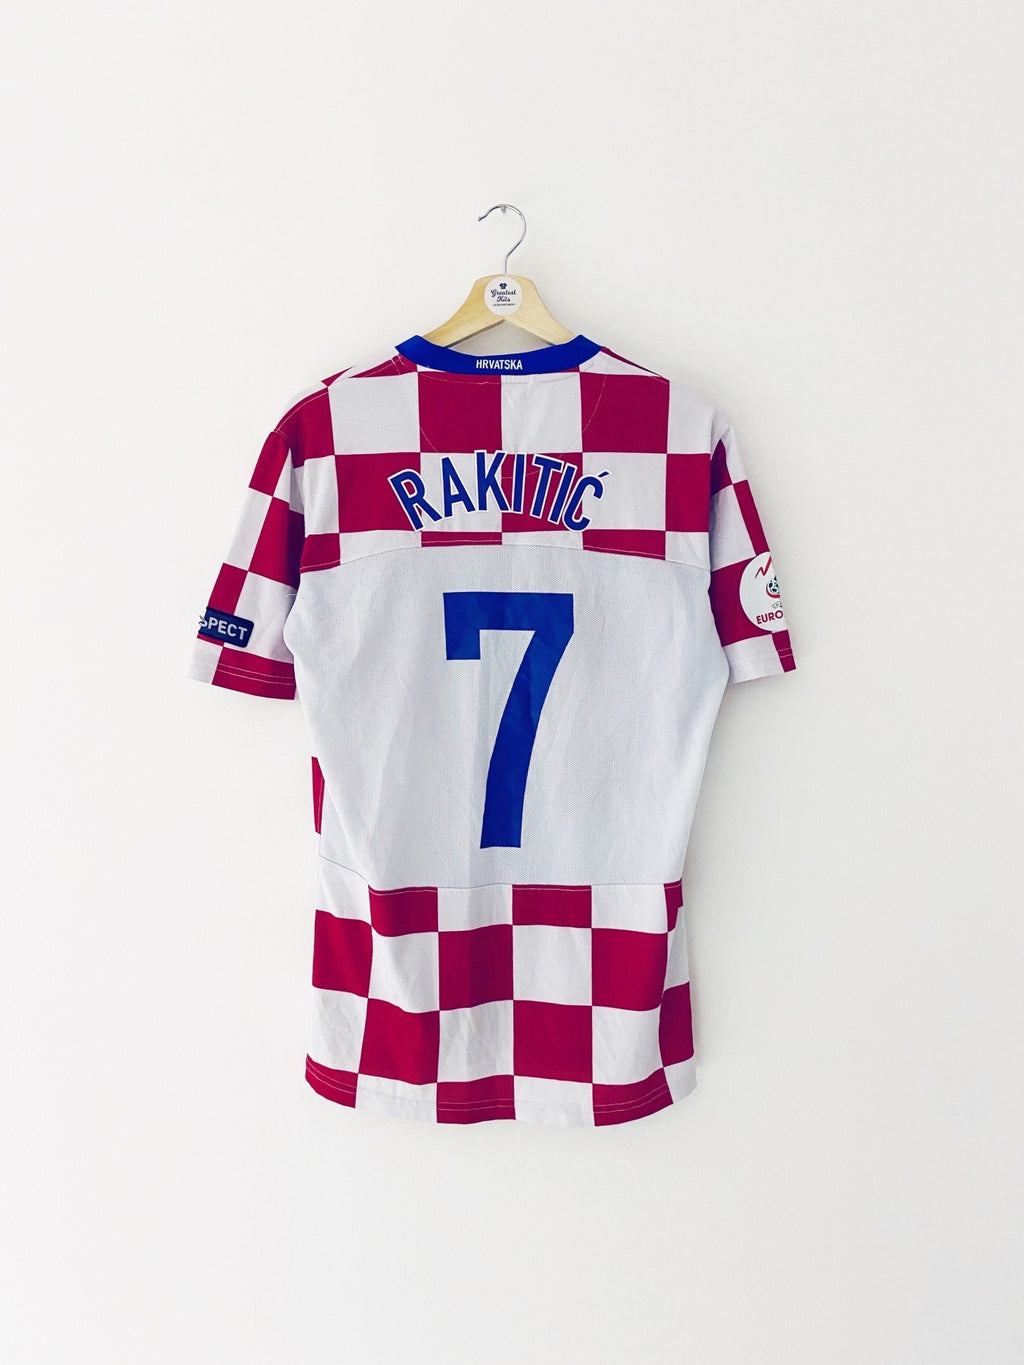 2008 Croatia Home Shirt Rakitic #7 (L) 7.5/10